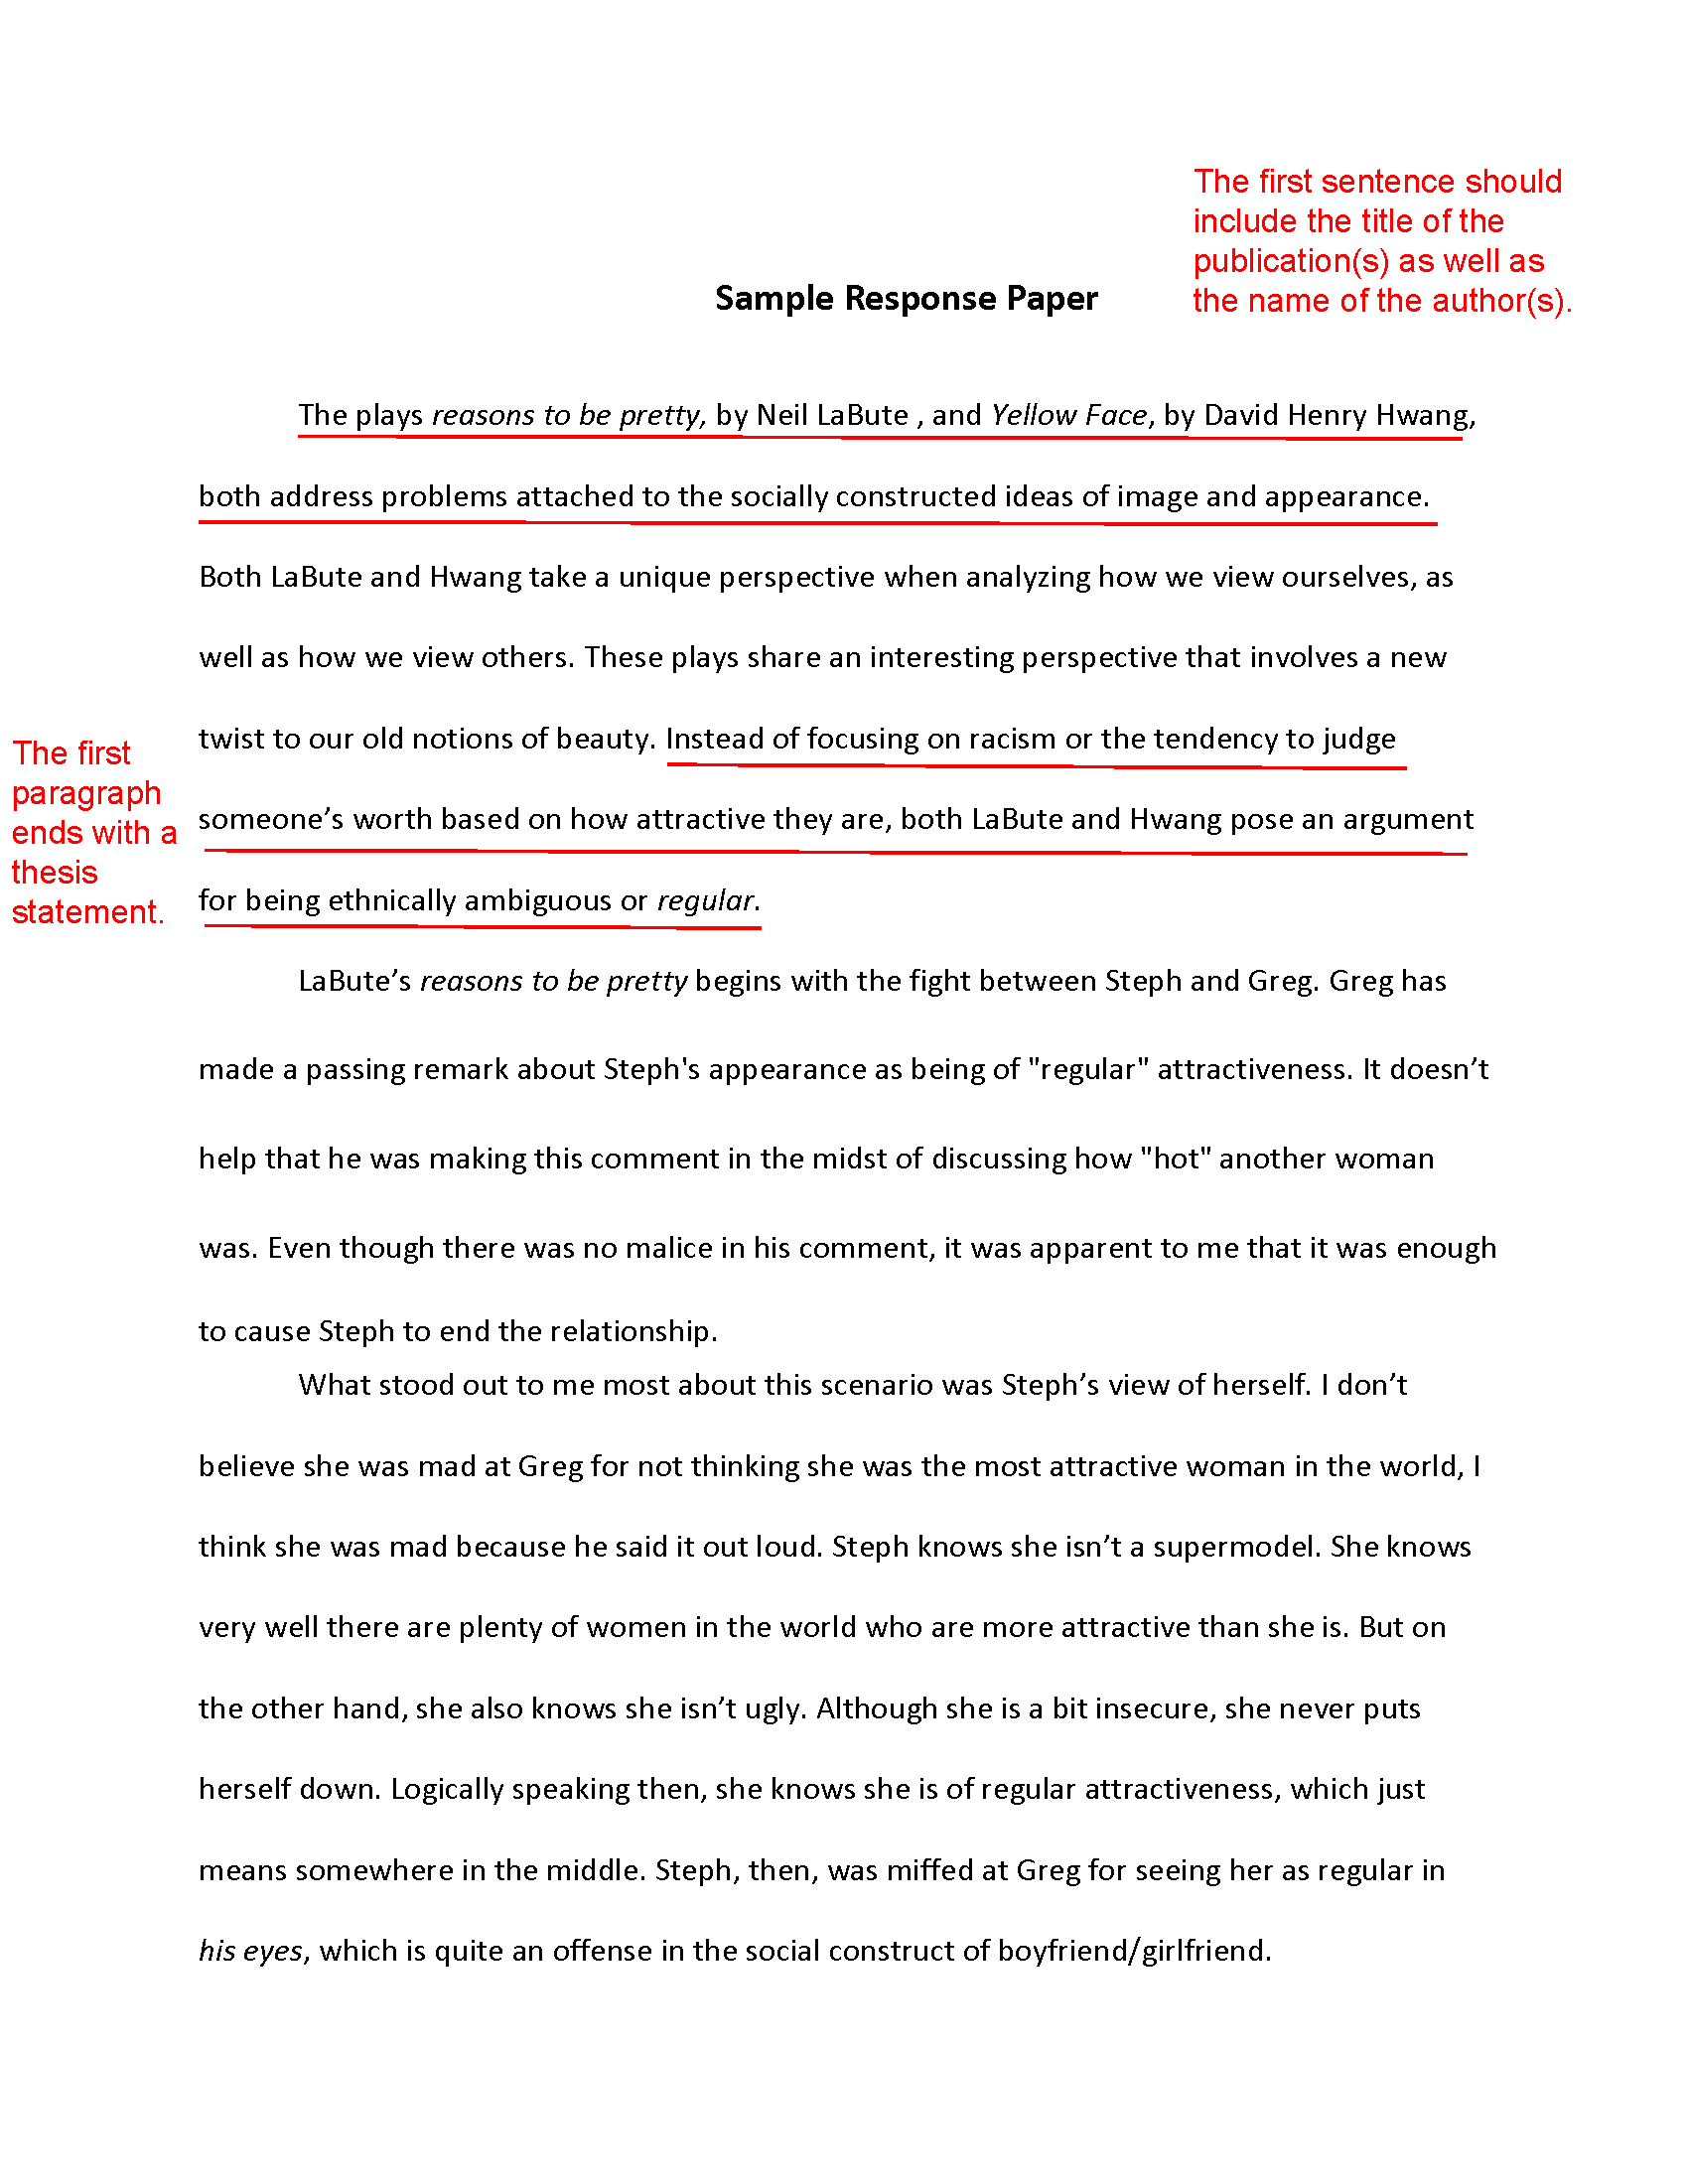 Thesis In Essay  Science And Religion Essay also Essay On English Teacher How To Write A Response Paper English Essay Websites